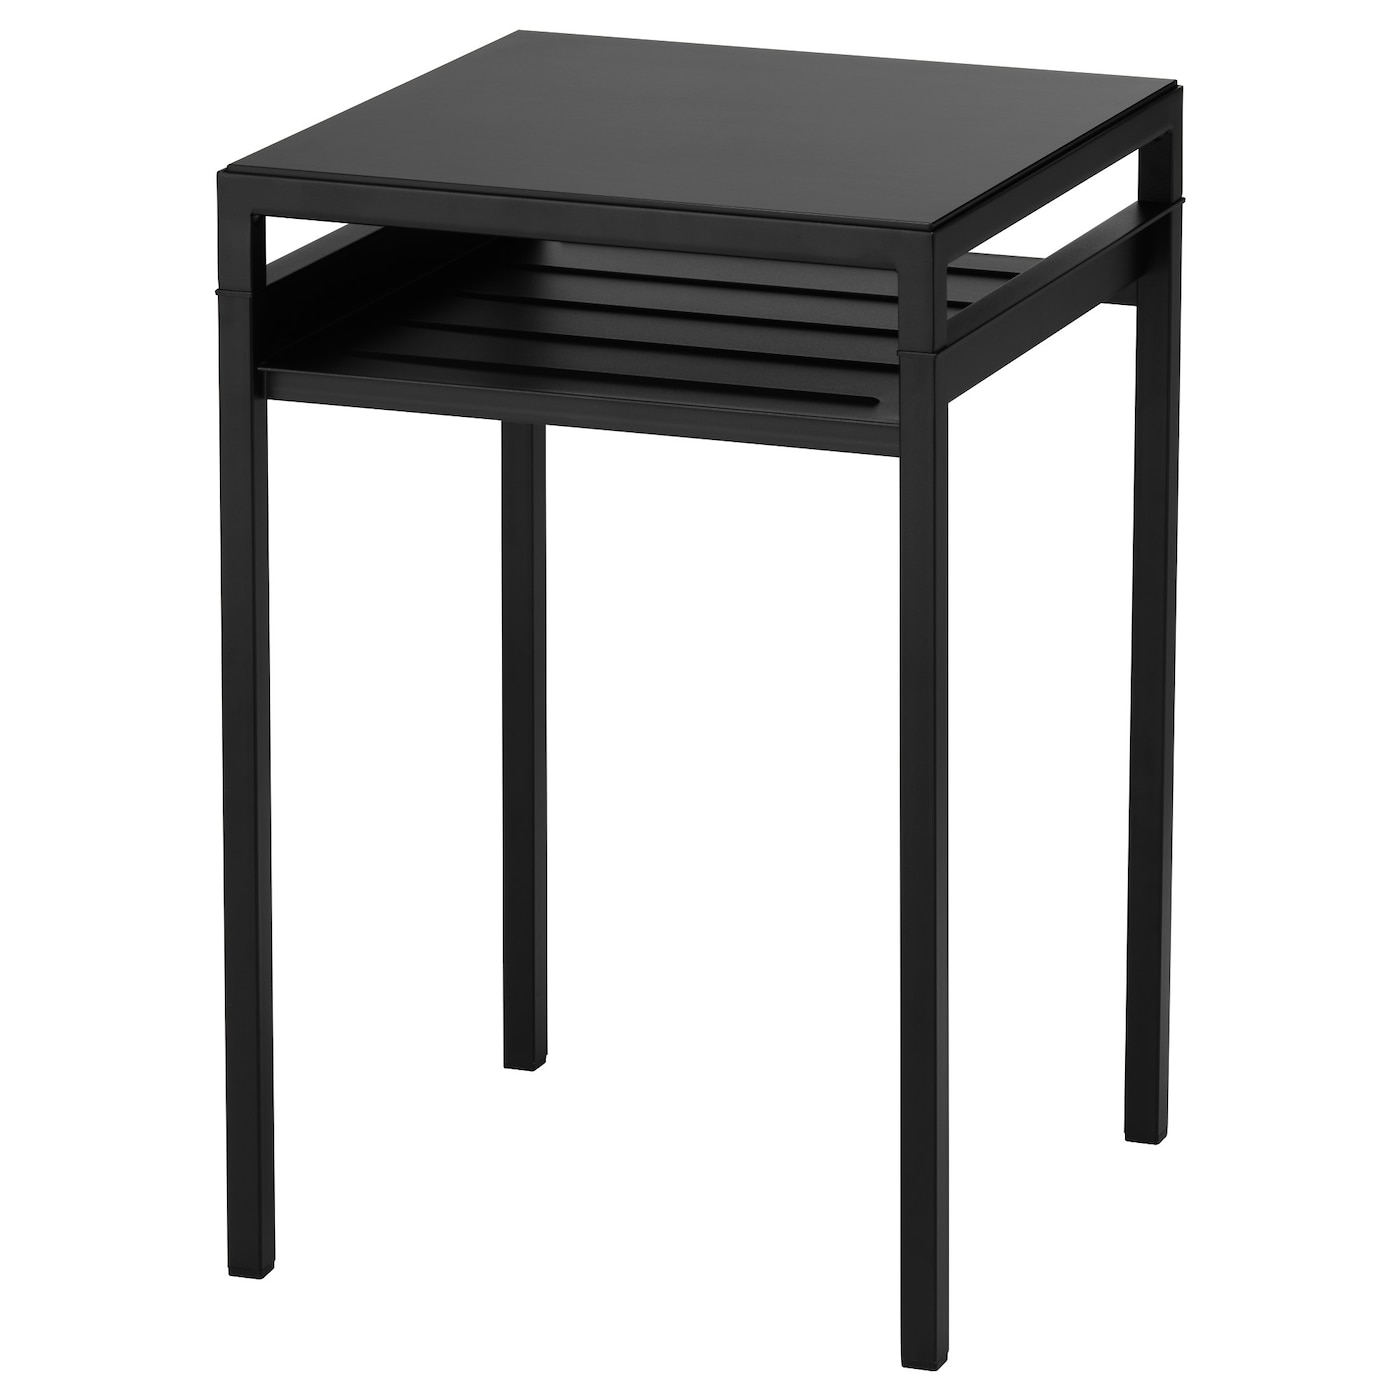 occasional tables tray storage window tables ikea. Black Bedroom Furniture Sets. Home Design Ideas